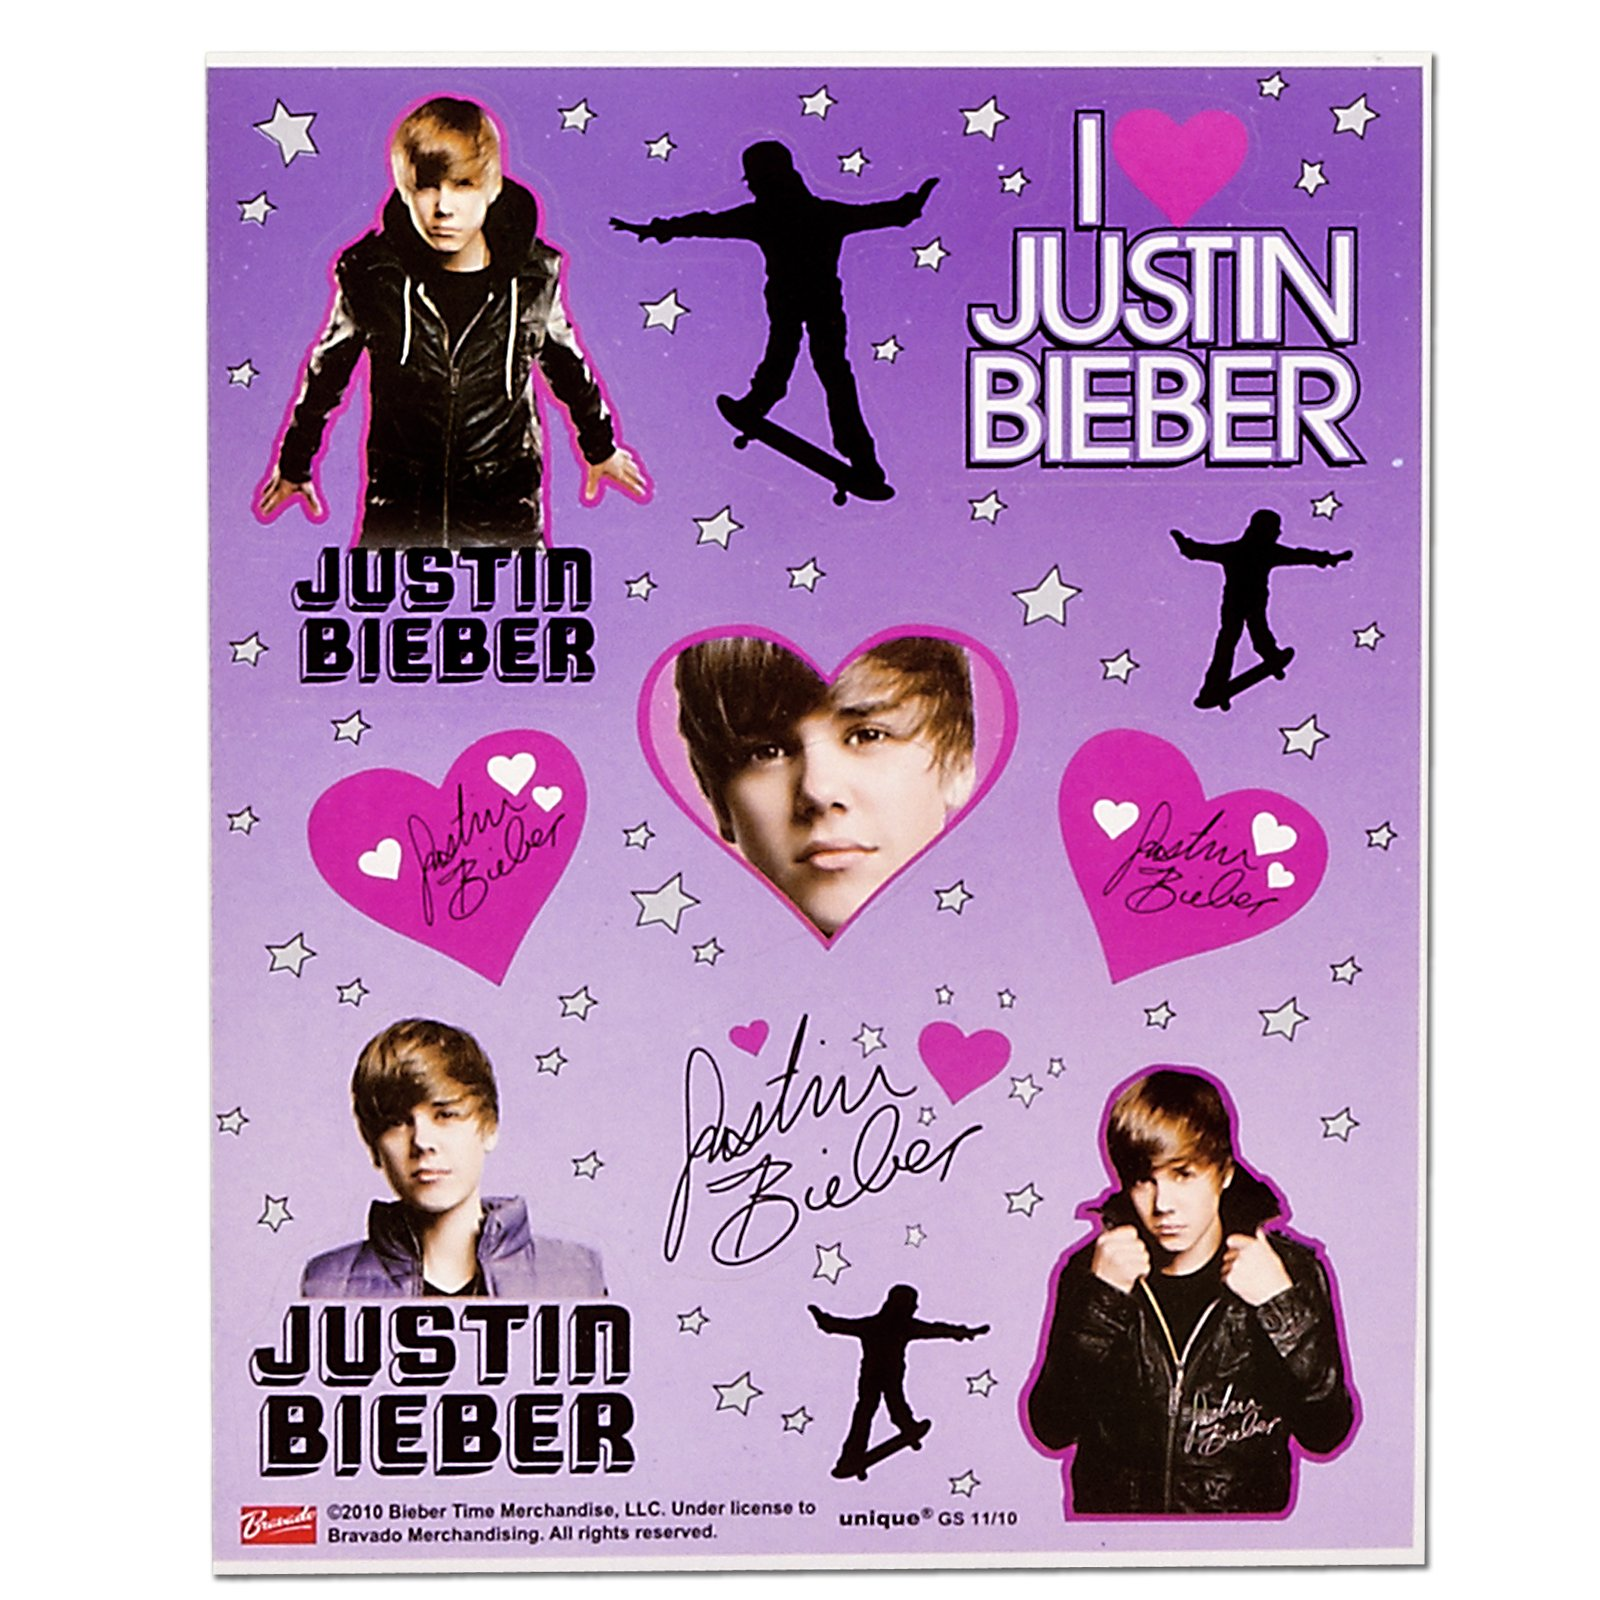 Justin Bieber Sticker Sheets (4 count)